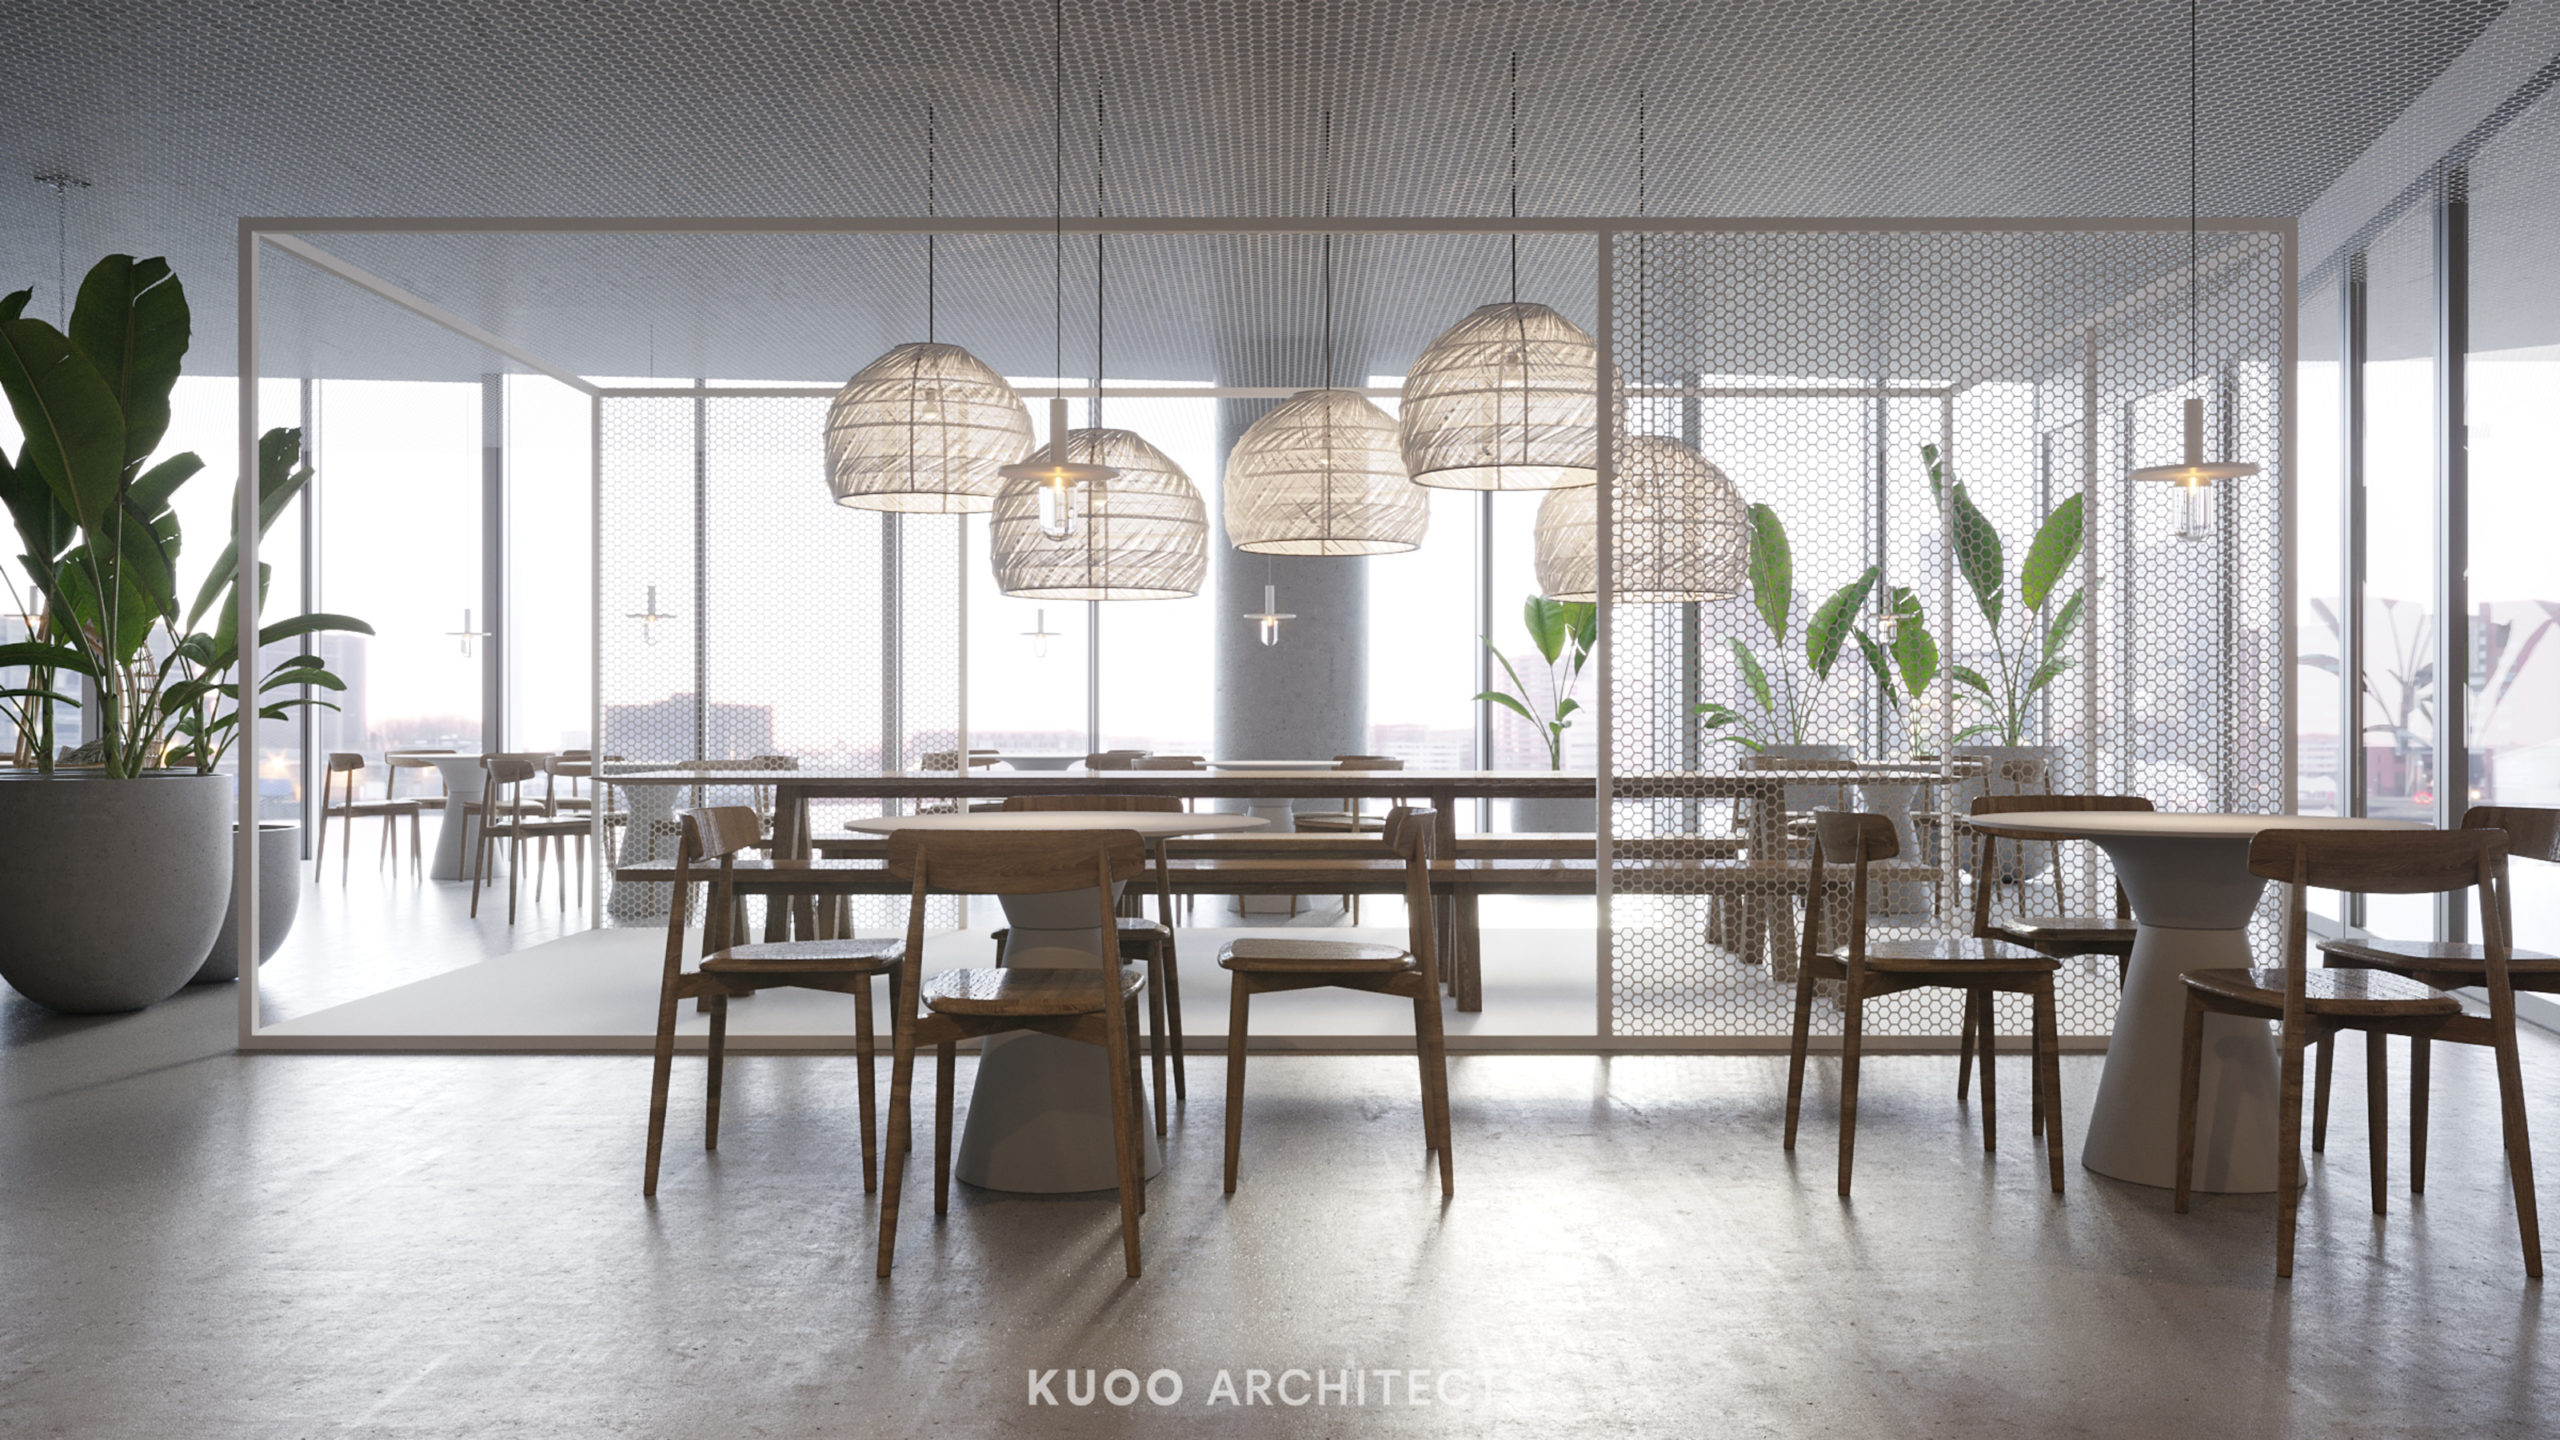 kuoo_architects_mcafe_6